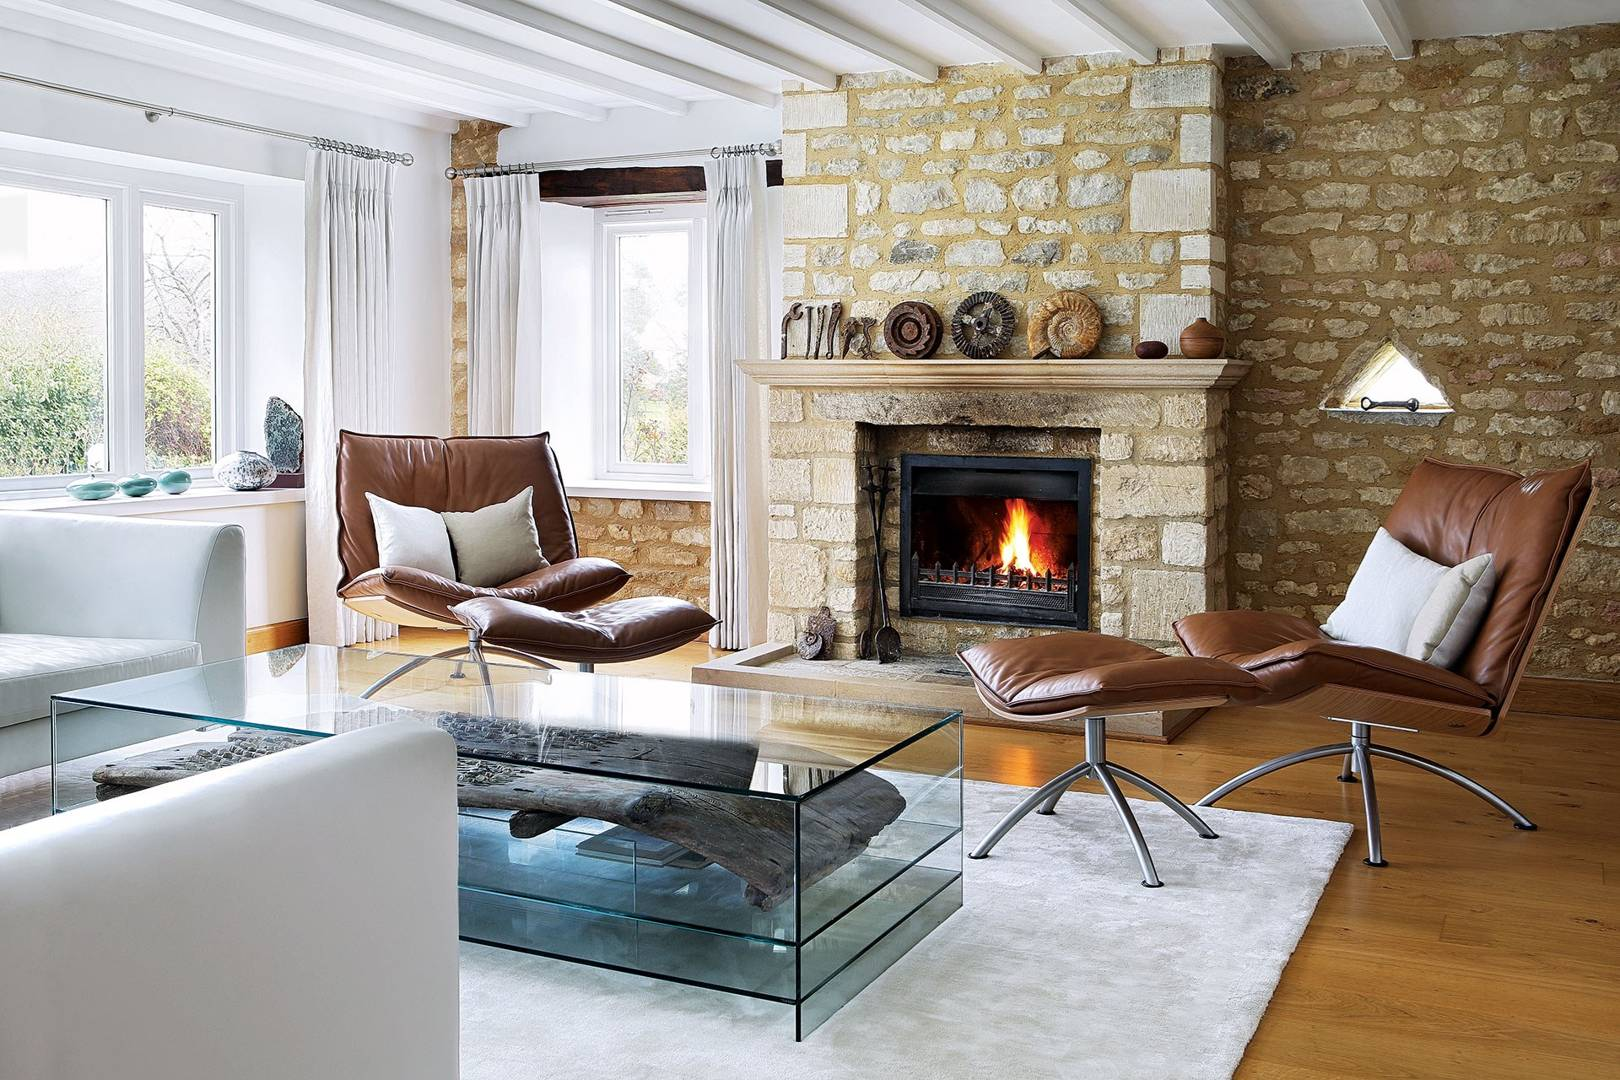 We make a stylish interior arch yourself (instruction)